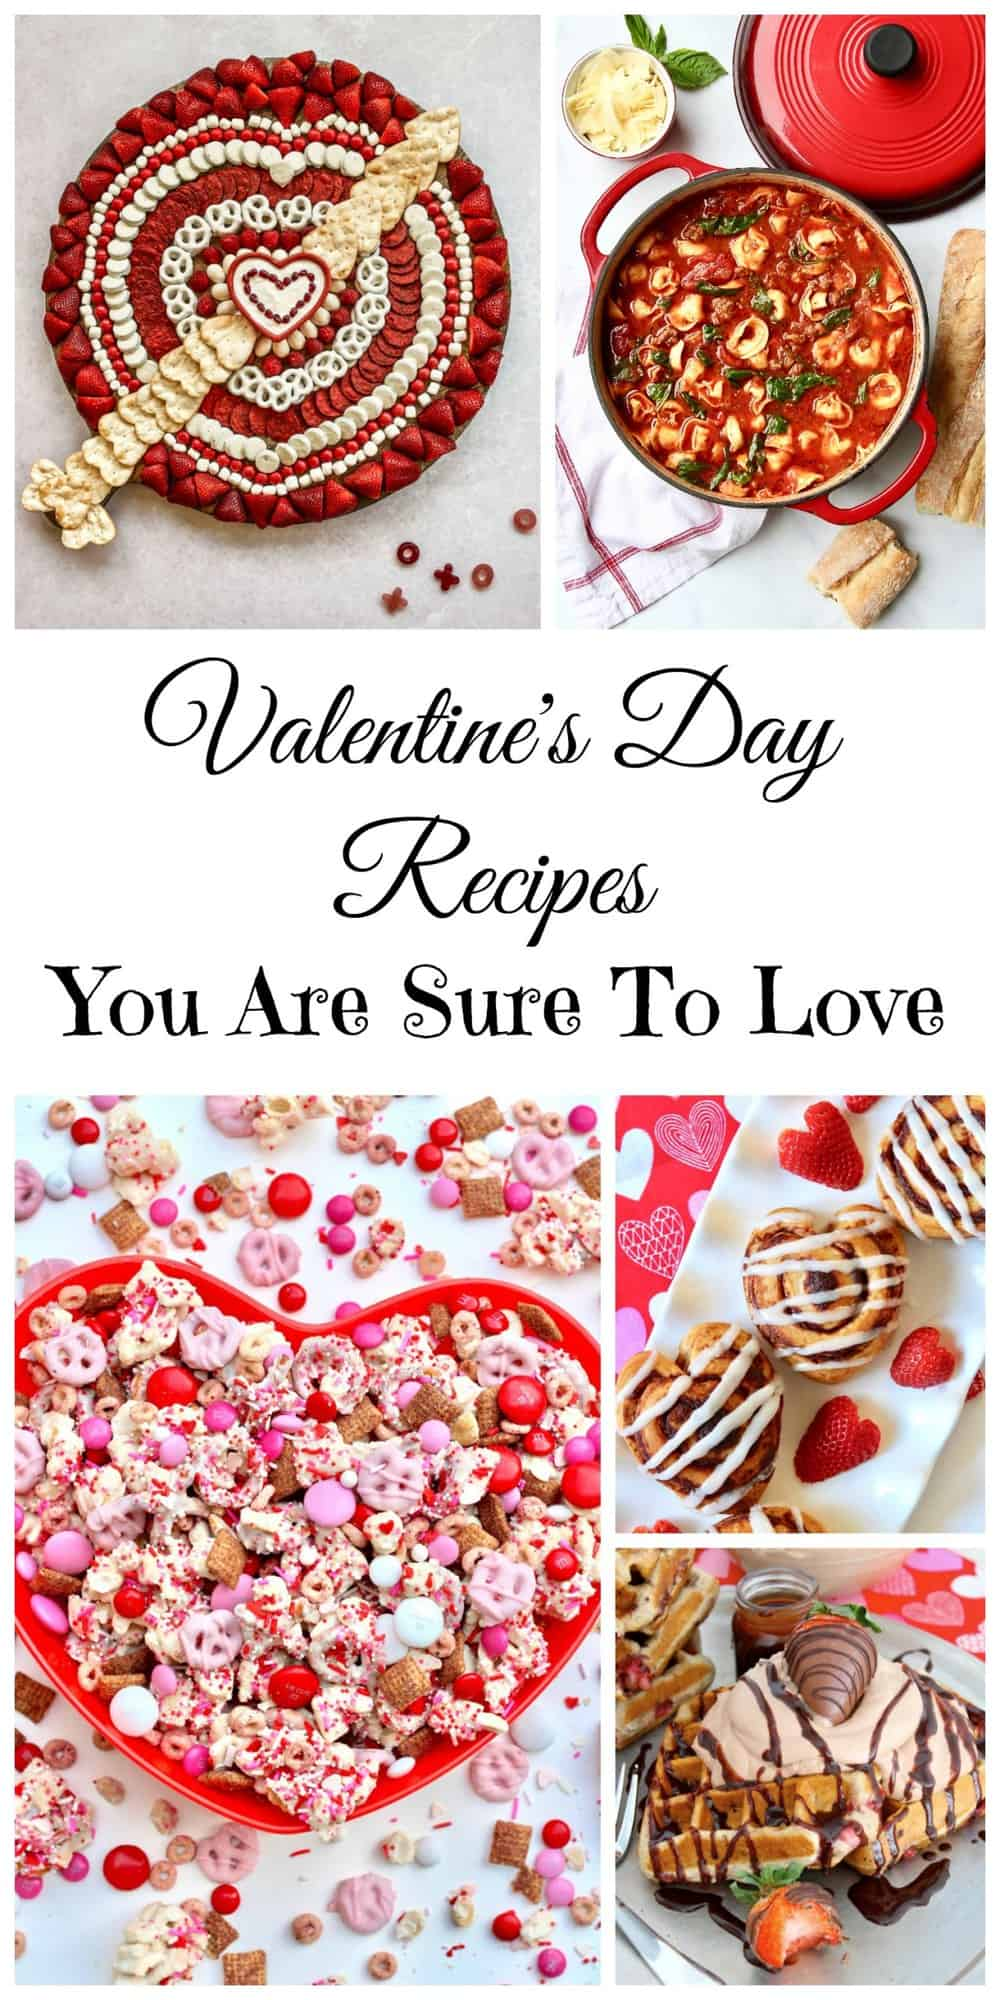 Valentine's Day Recipes You Are Sure To Love